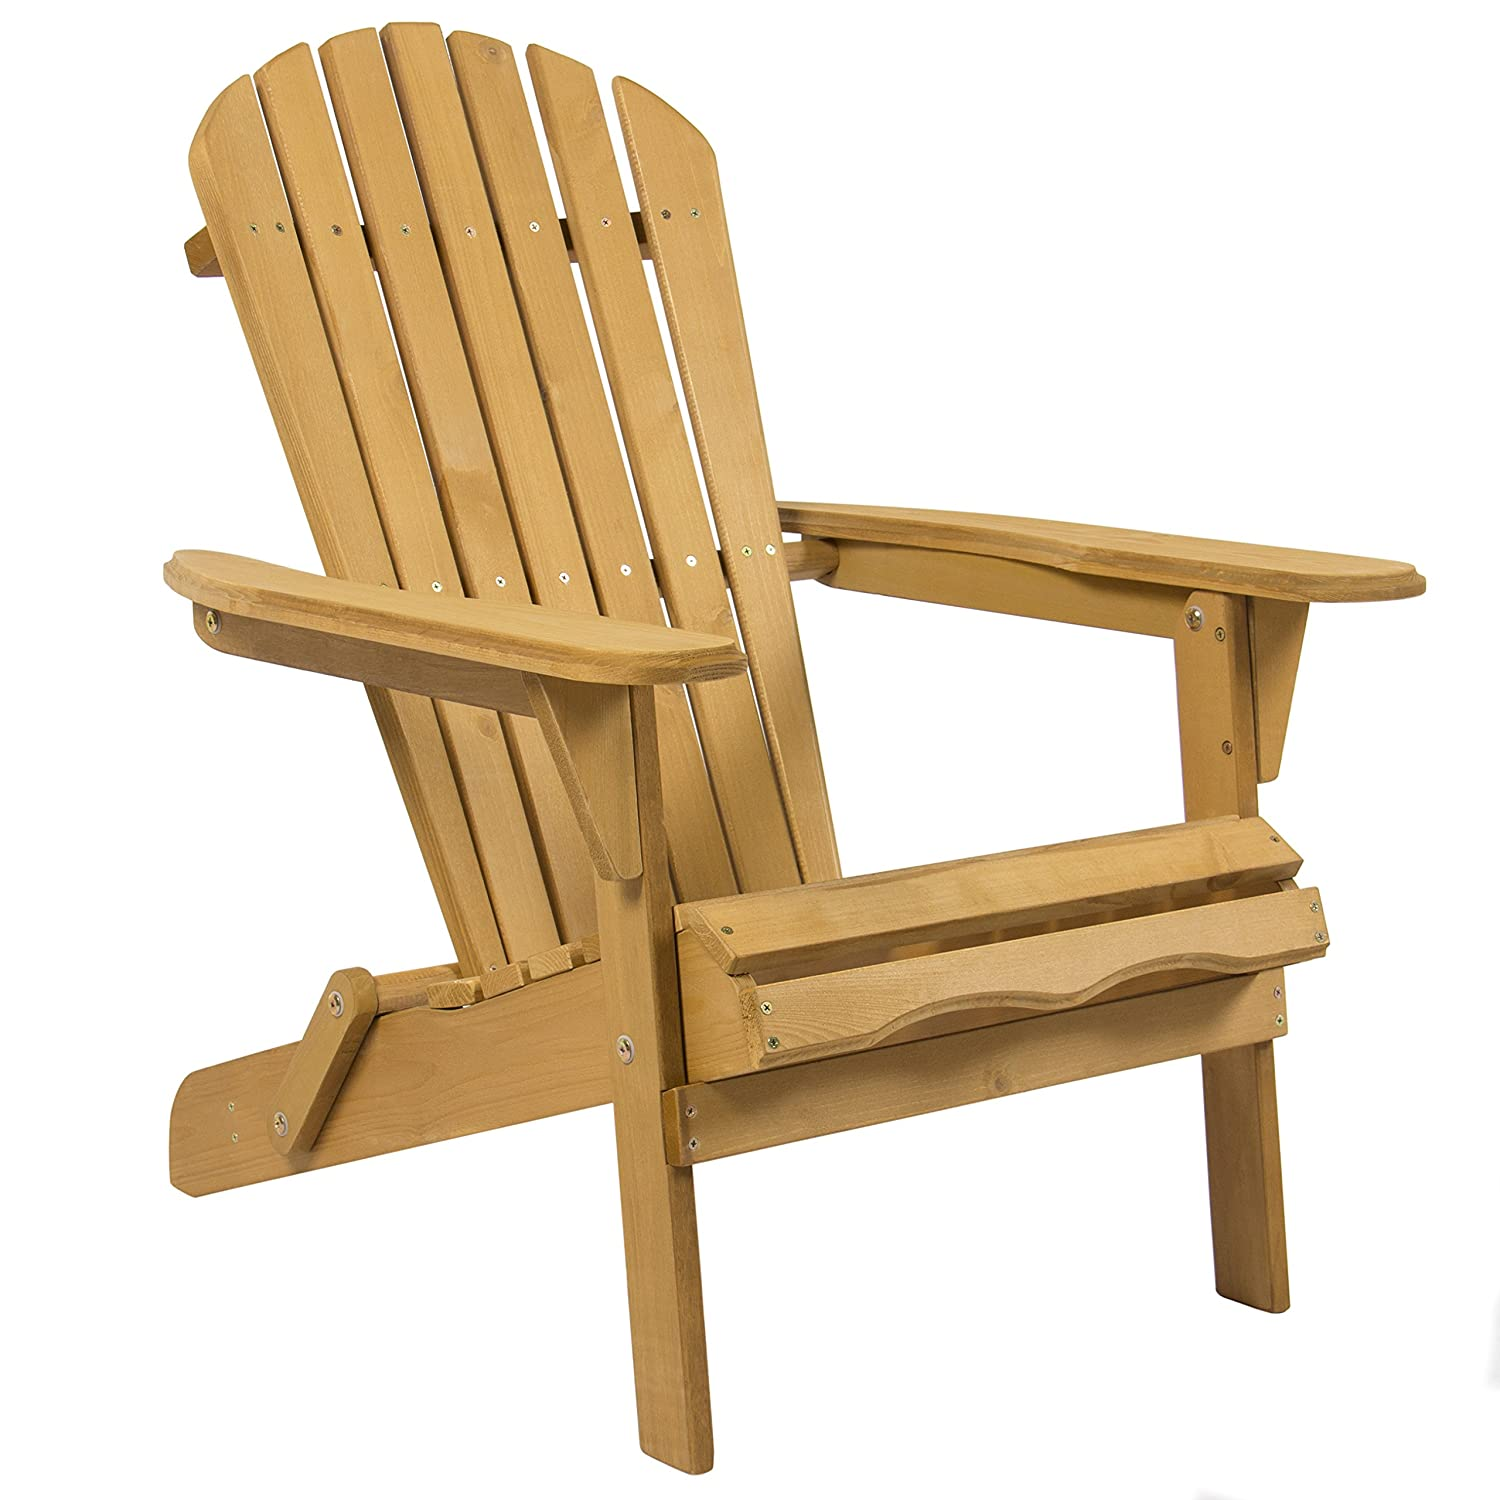 1 24 of over 2000 results for patio lawn garden patio furniture accessories patio seating chairs adirondack chairs